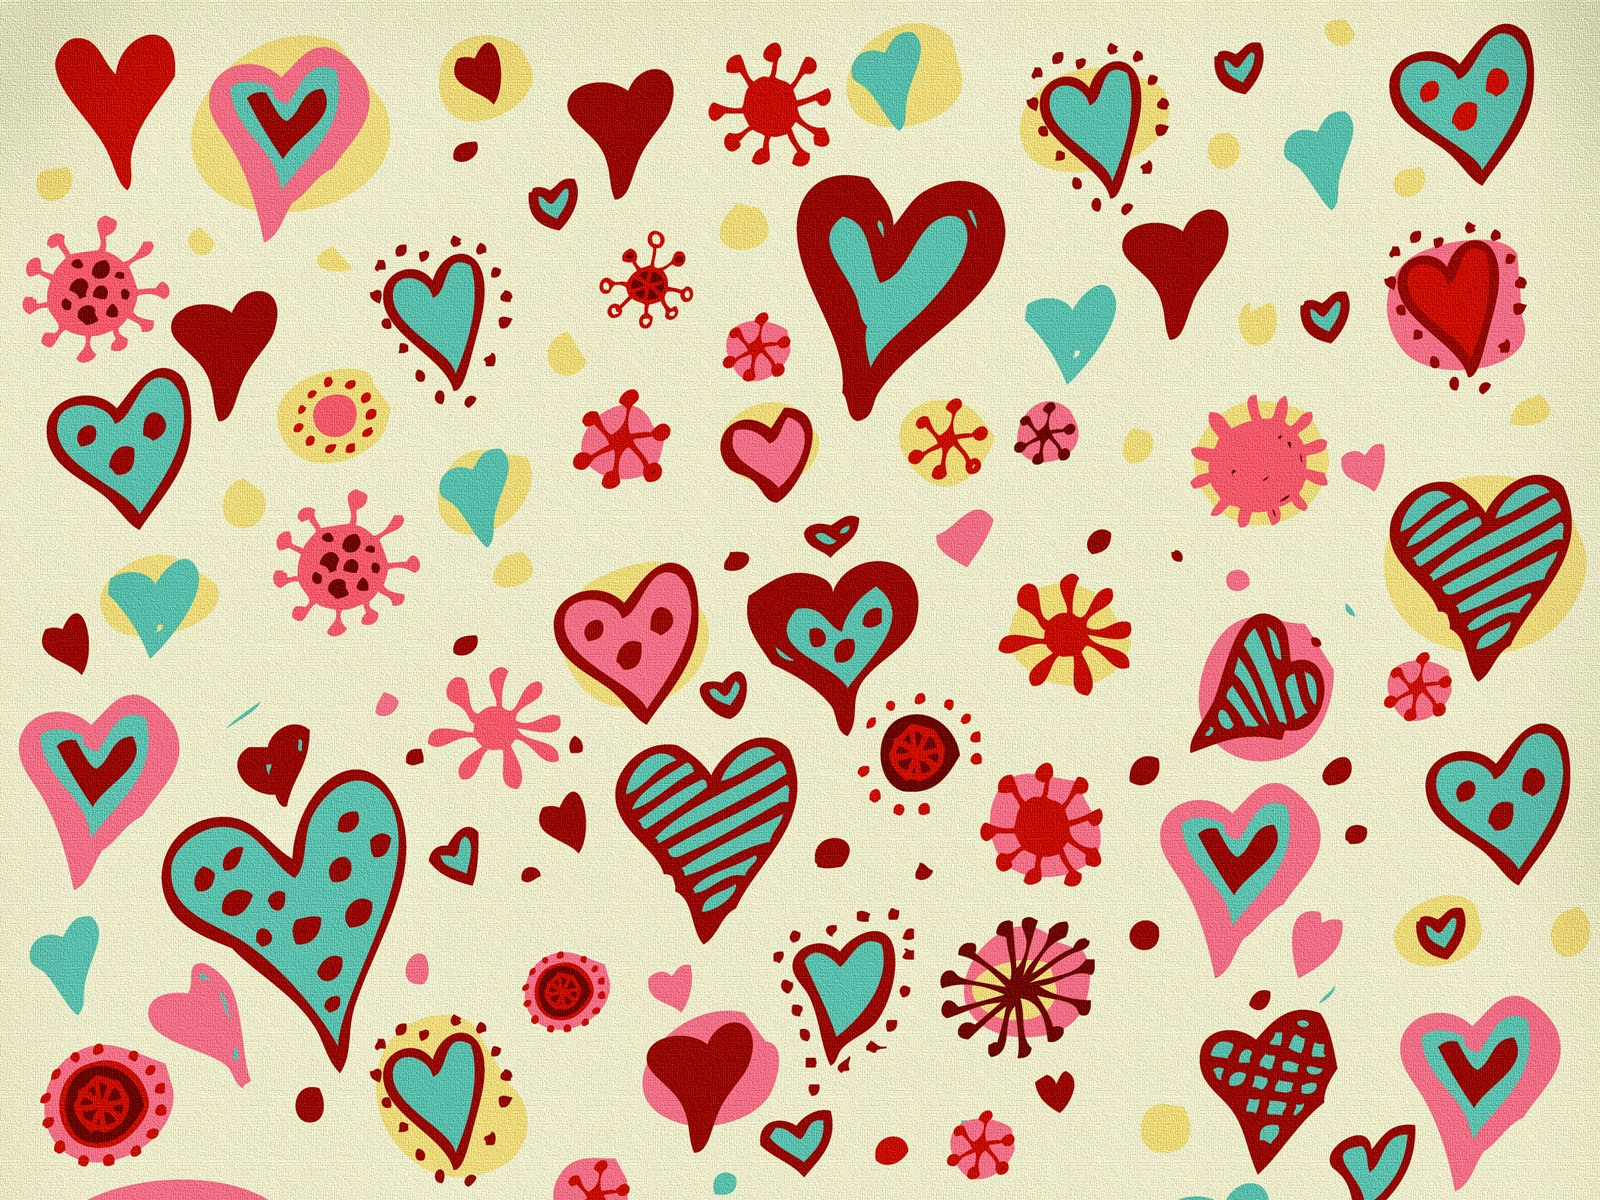 Hearts Wallpapers, part 4